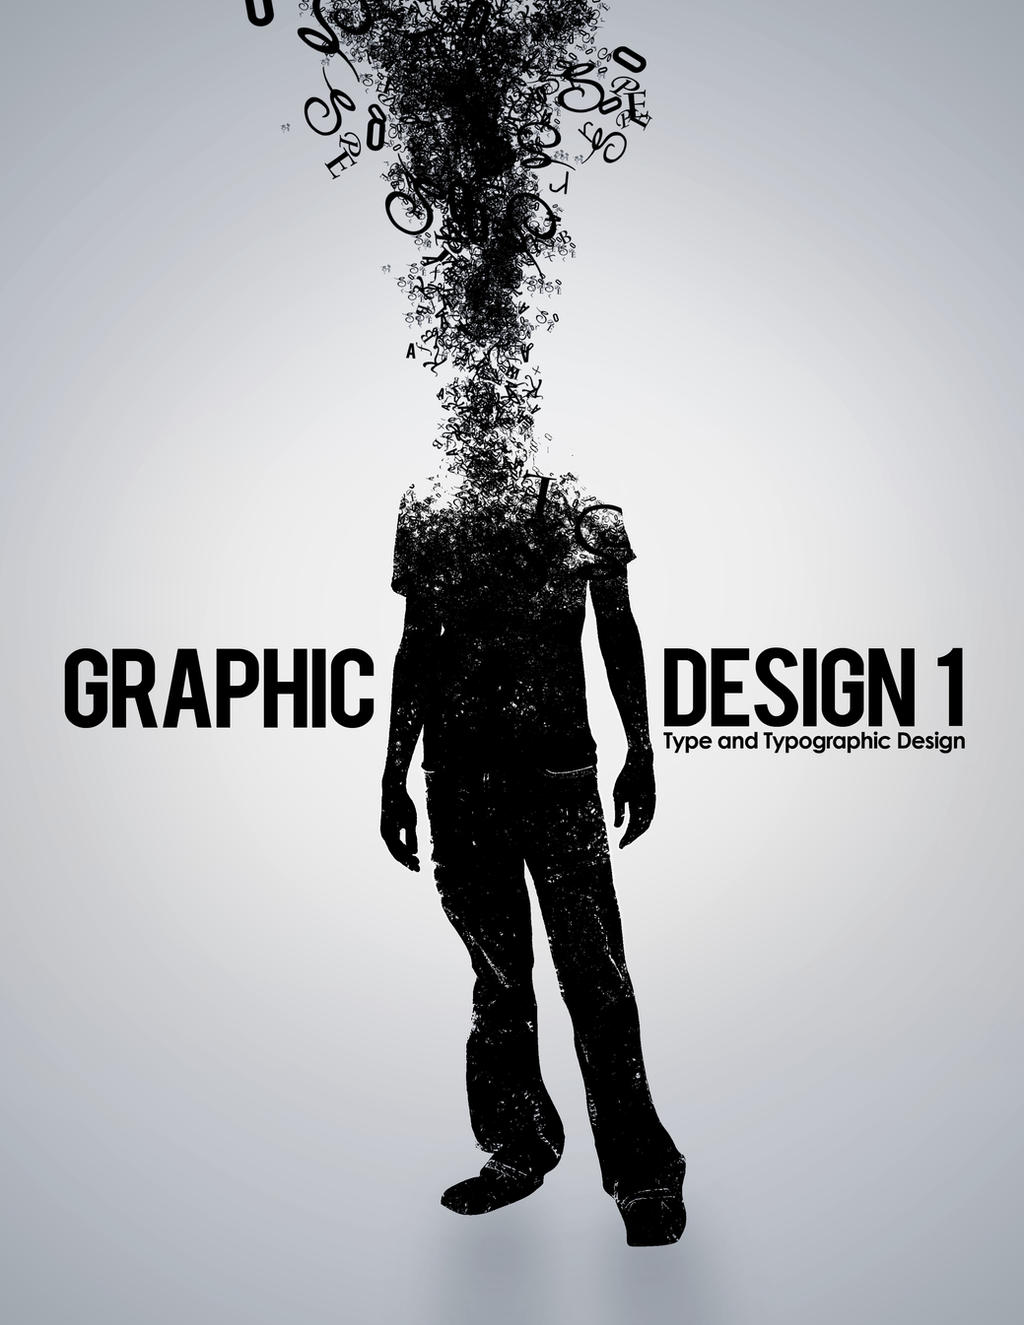 Graphic Design 1 Poster by Mechatron2300